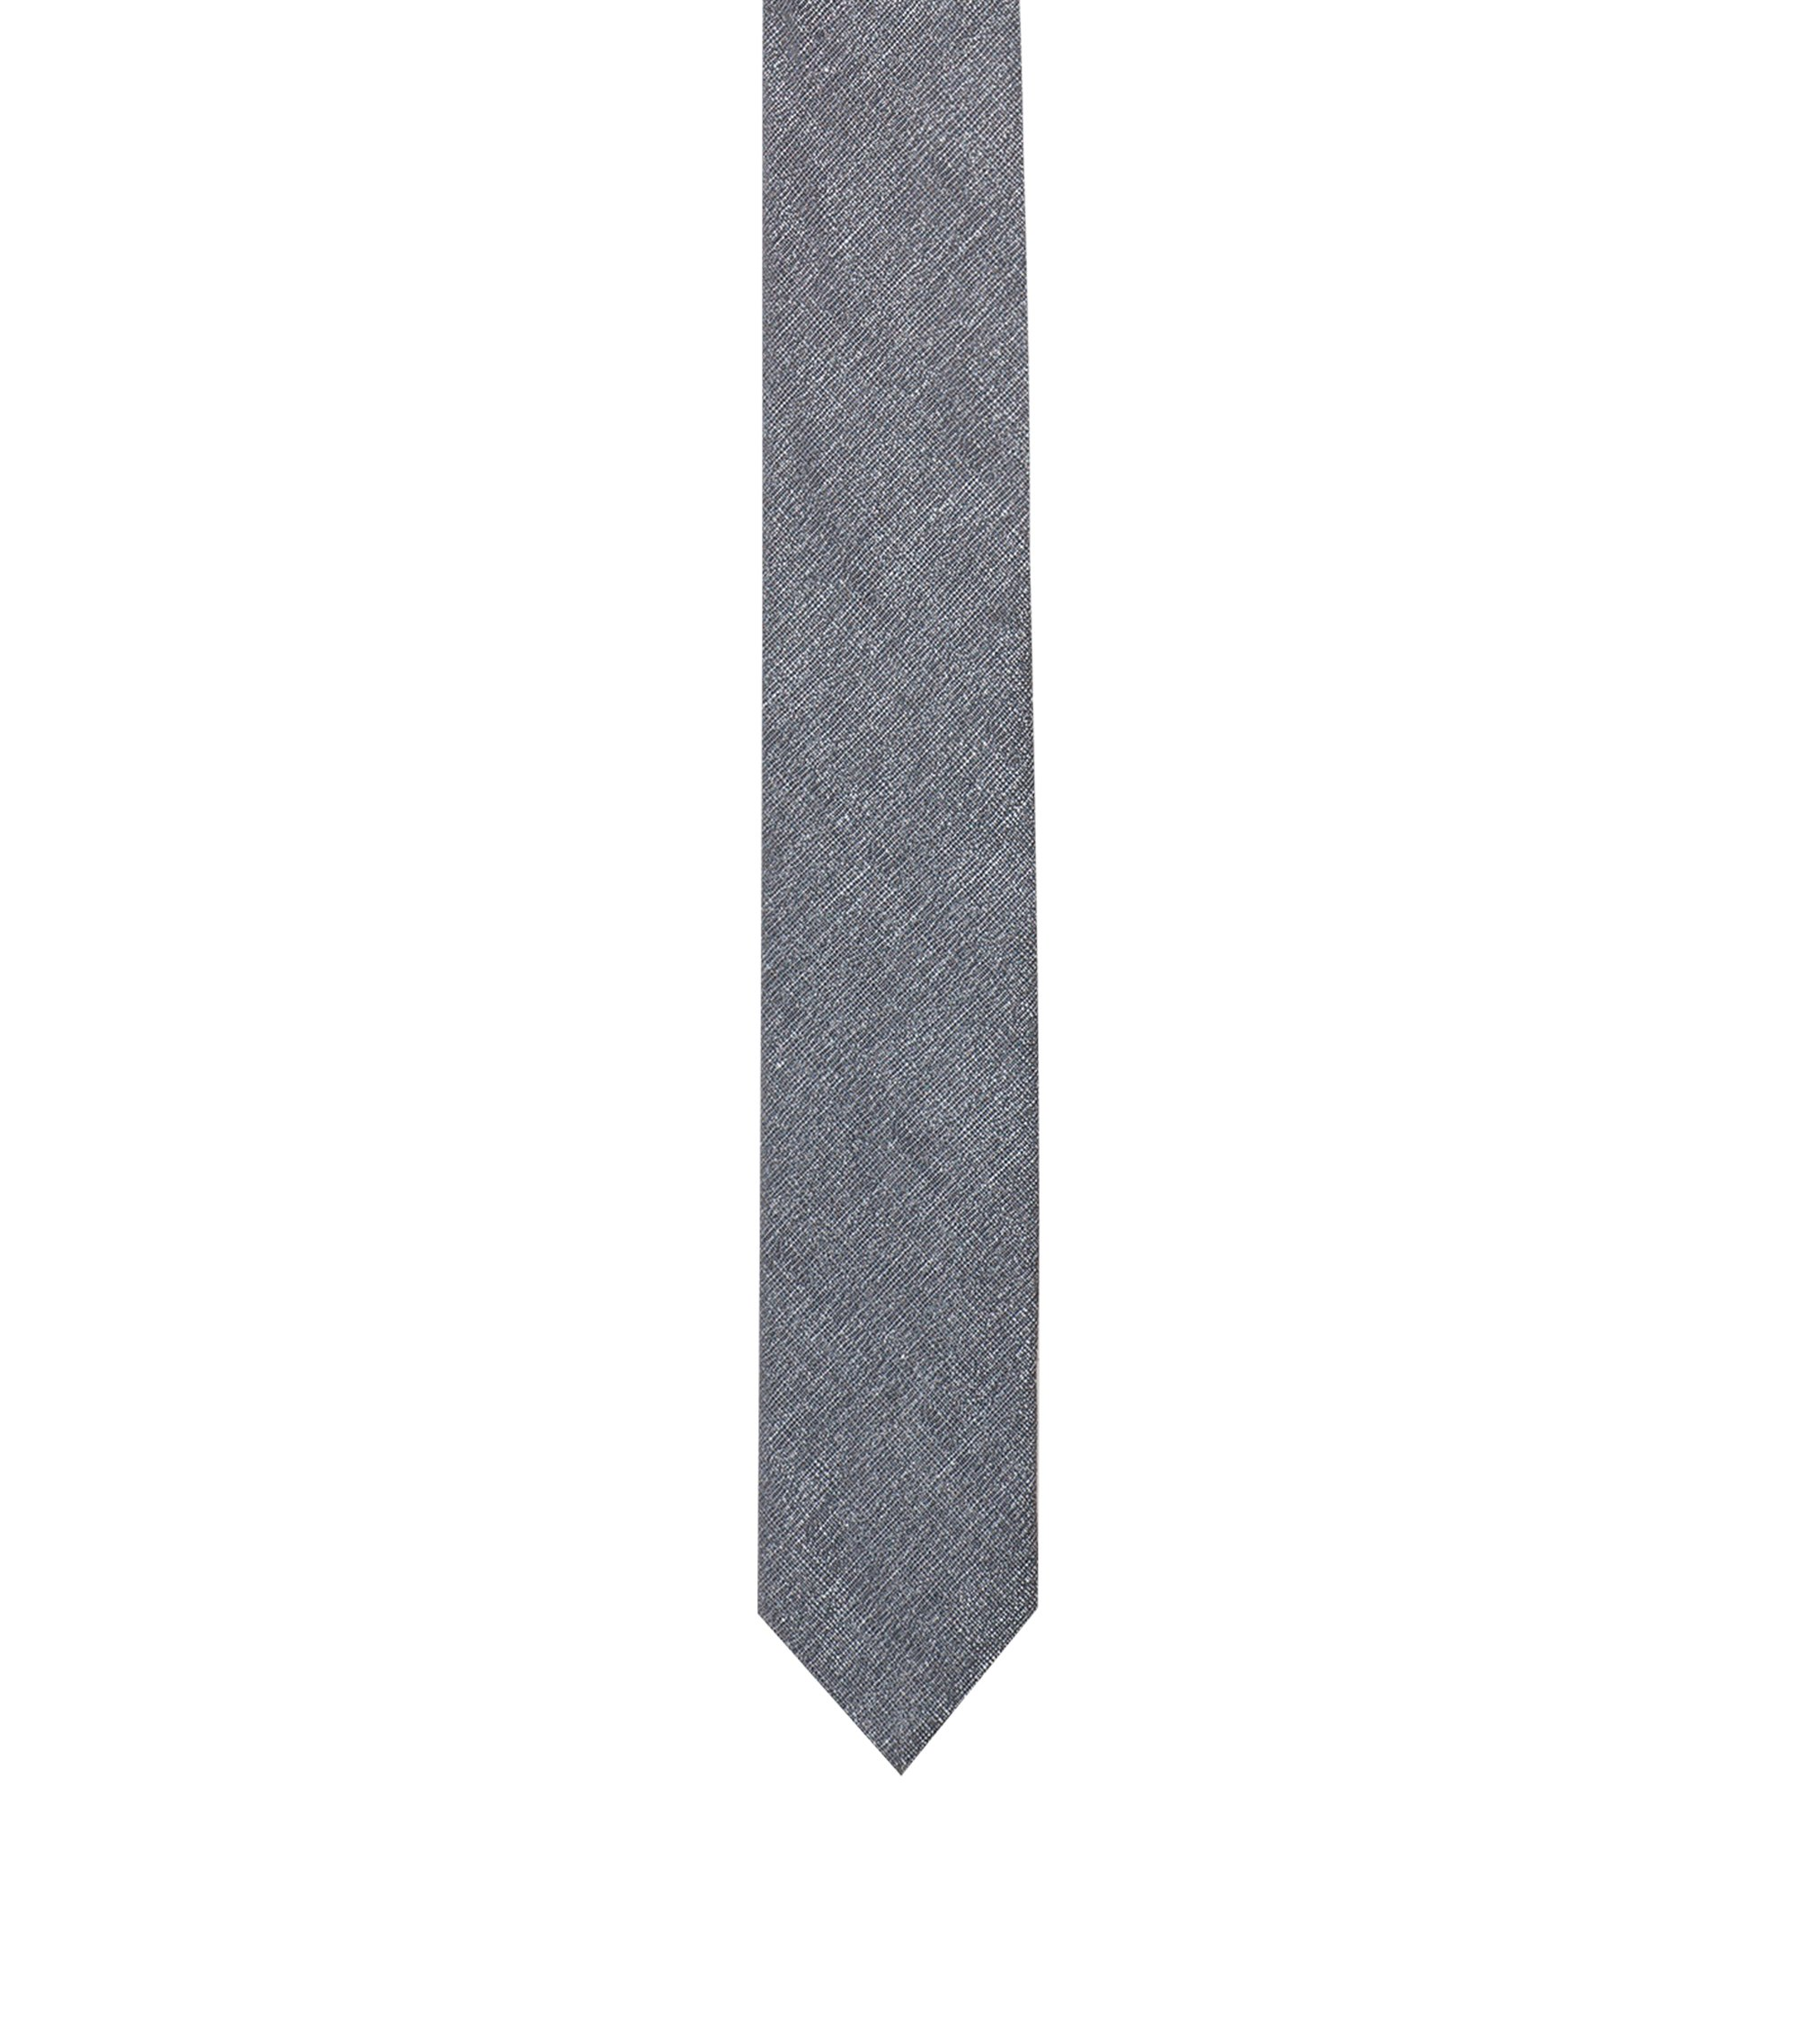 Jacquard tie in a linen blend, Grey